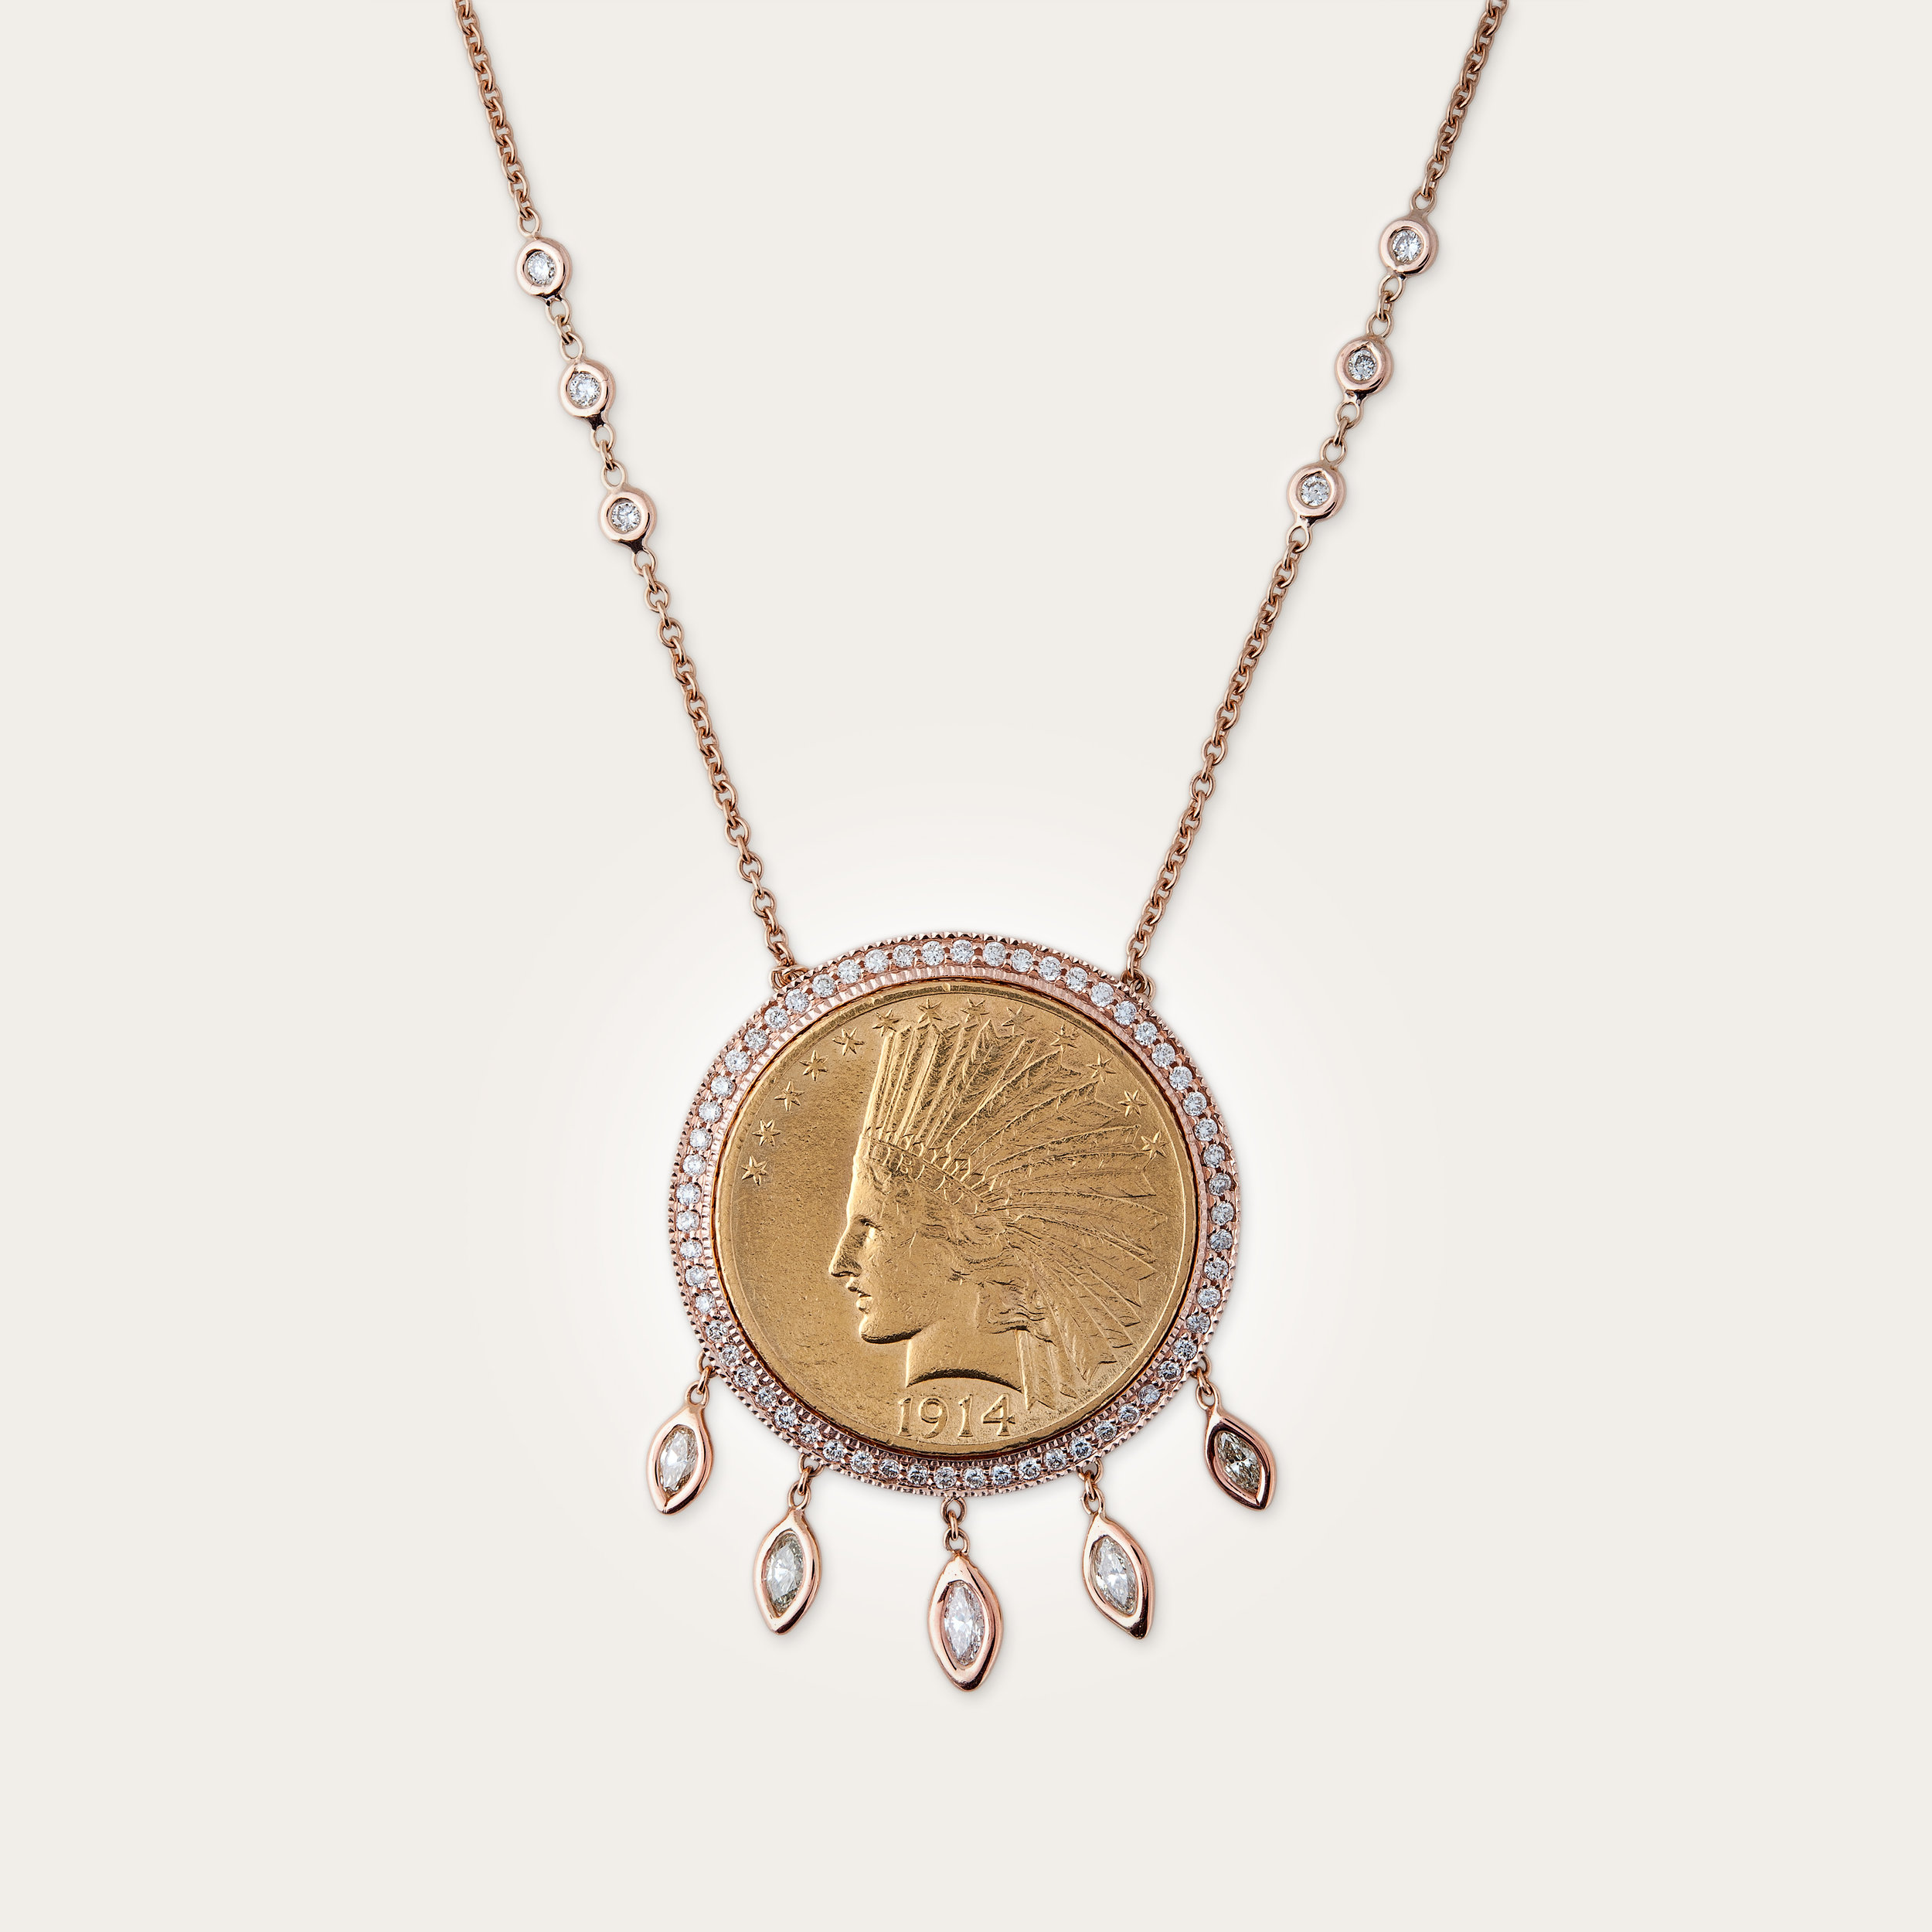 RG FULL PAVE 5 DIAMOND MARQUISE DROP ANTIQUE COIN NECKLACE 2.jpg